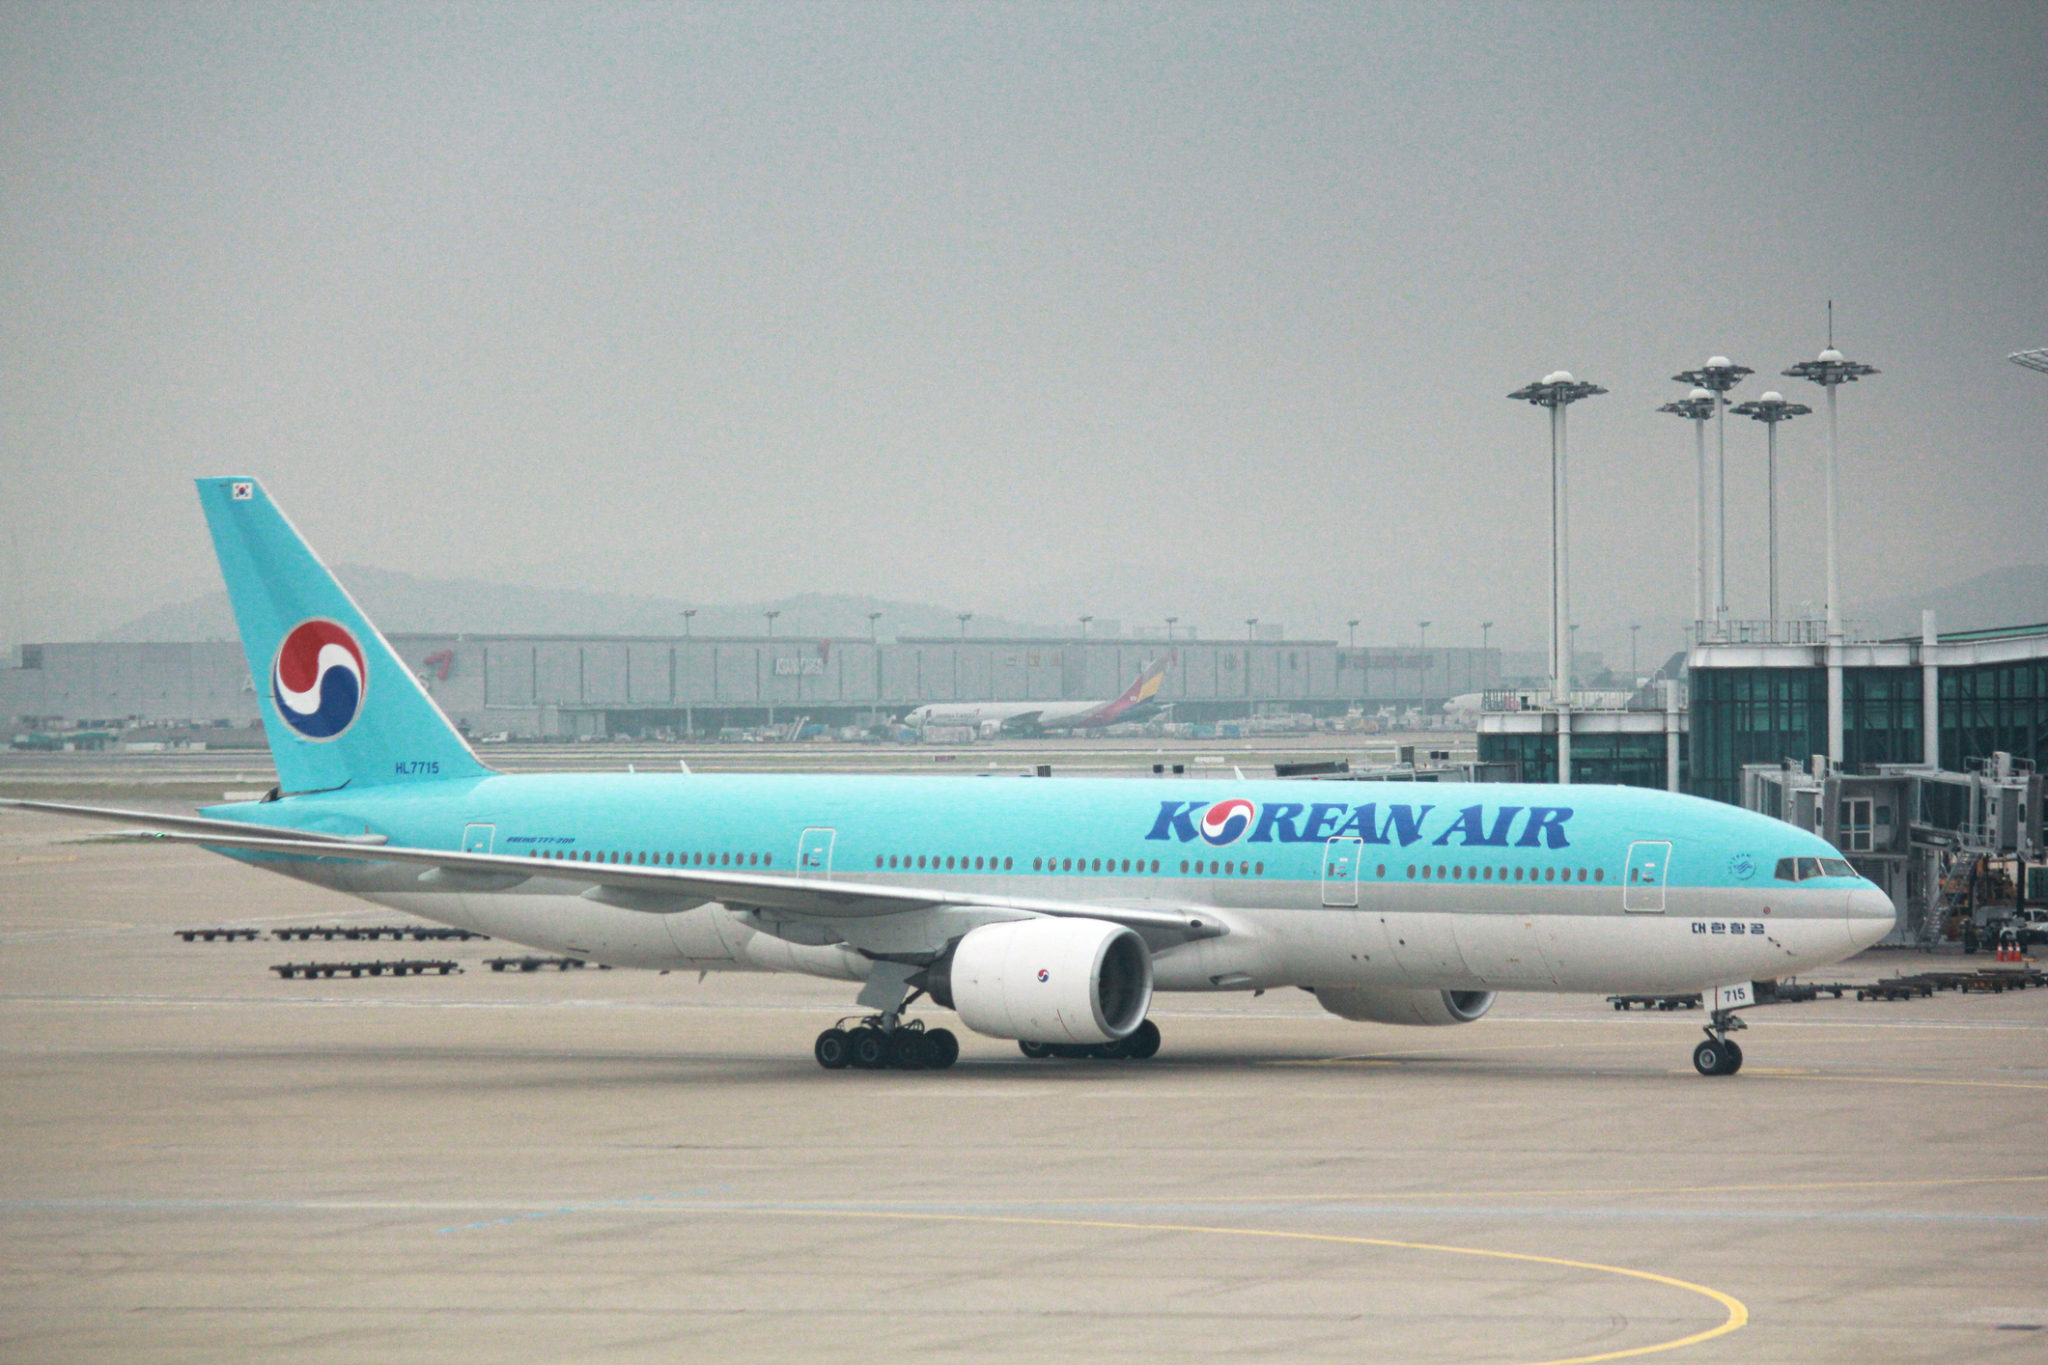 Korean Air Pilots Go on Unpaid Leave to Save Airline